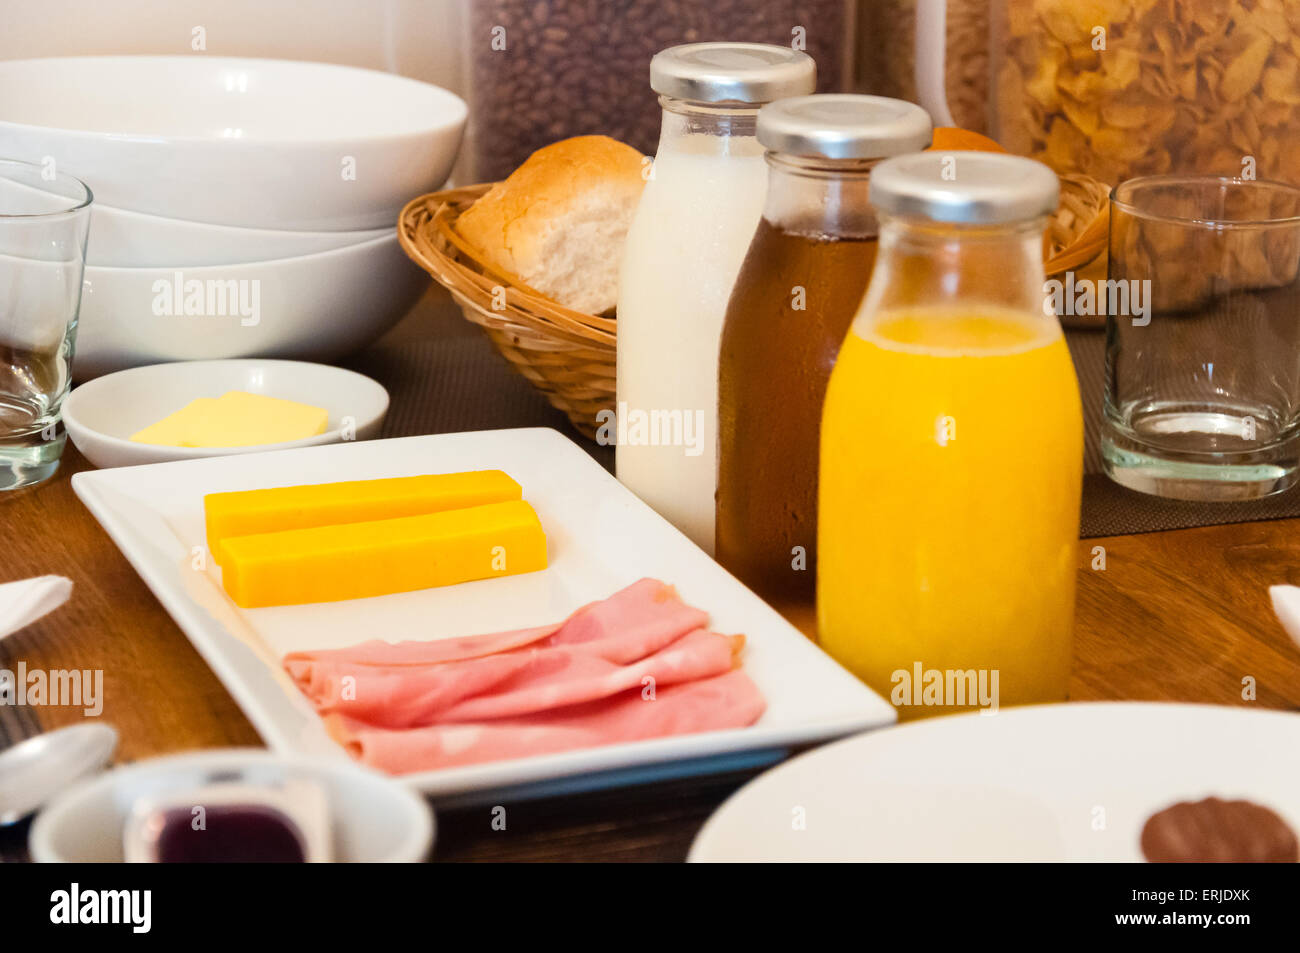 continental breakfast table setting at a hotel & continental breakfast table setting at a hotel Stock Photo: 83384635 ...